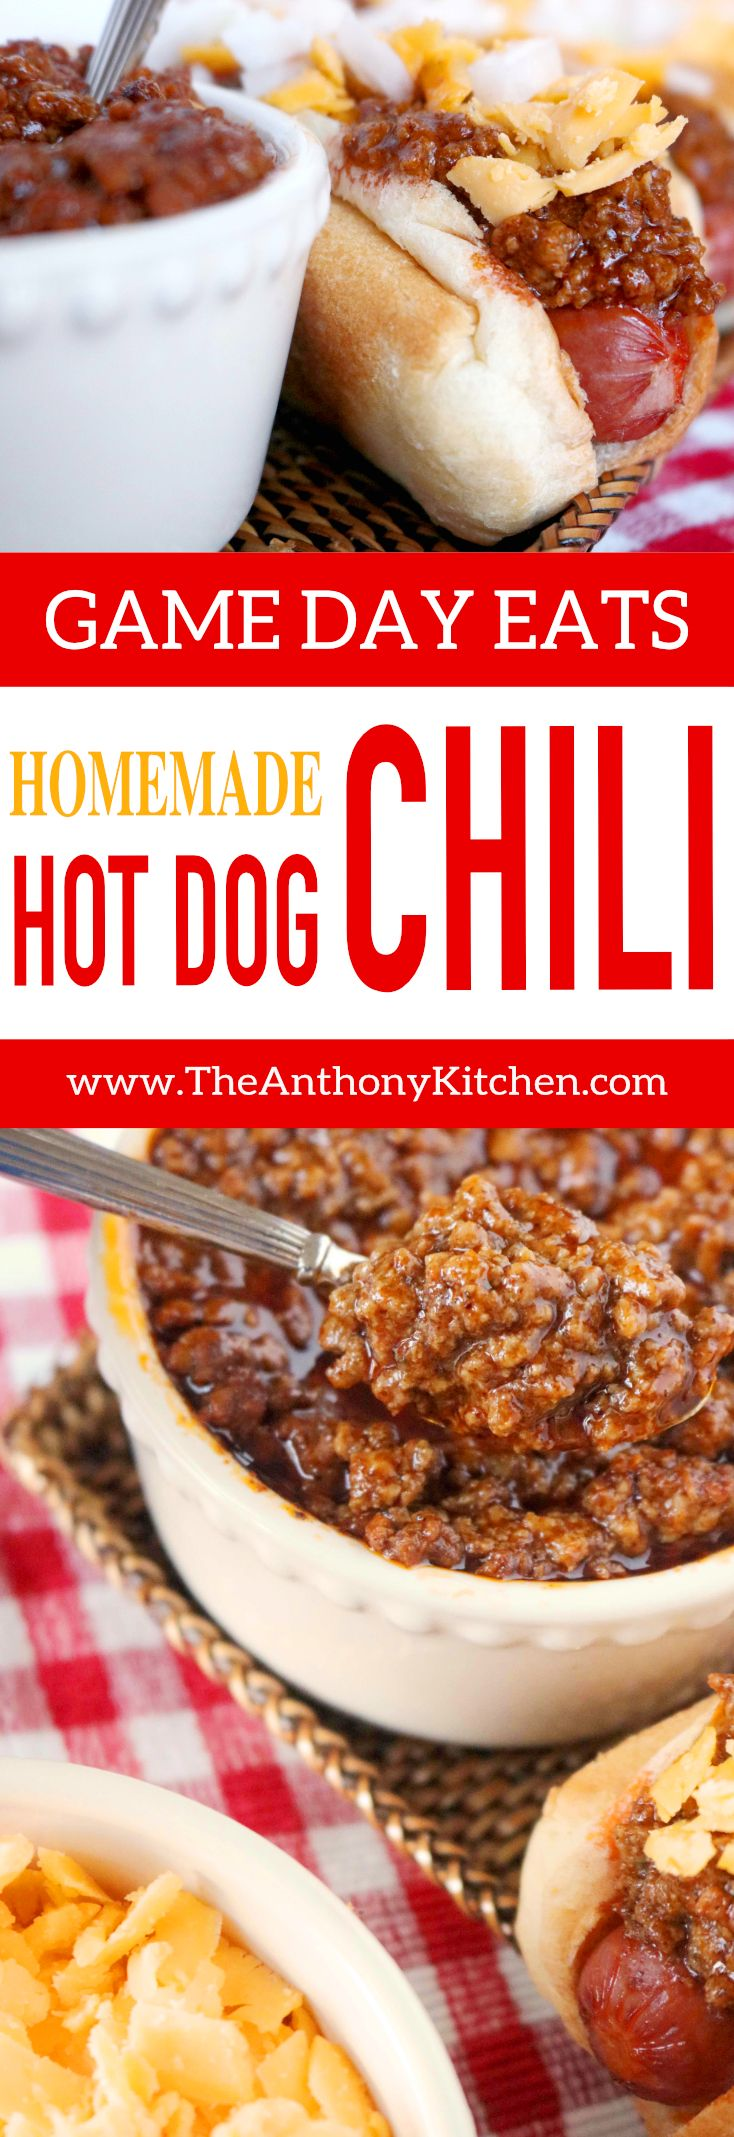 Easy Homemade Hot Dog Chili Recipe | Aquick-fix hot dog sauce recipe featuring ground beef, ketchup and the perfect mix of spices. It's an upgrade to canned chili and a recipe that won't leave you regretting that second chili dog | #homemadehotdogchili #hotdogsauce #easyhotdogchili #groundbeefrecipe #gamedayfood #footballfood